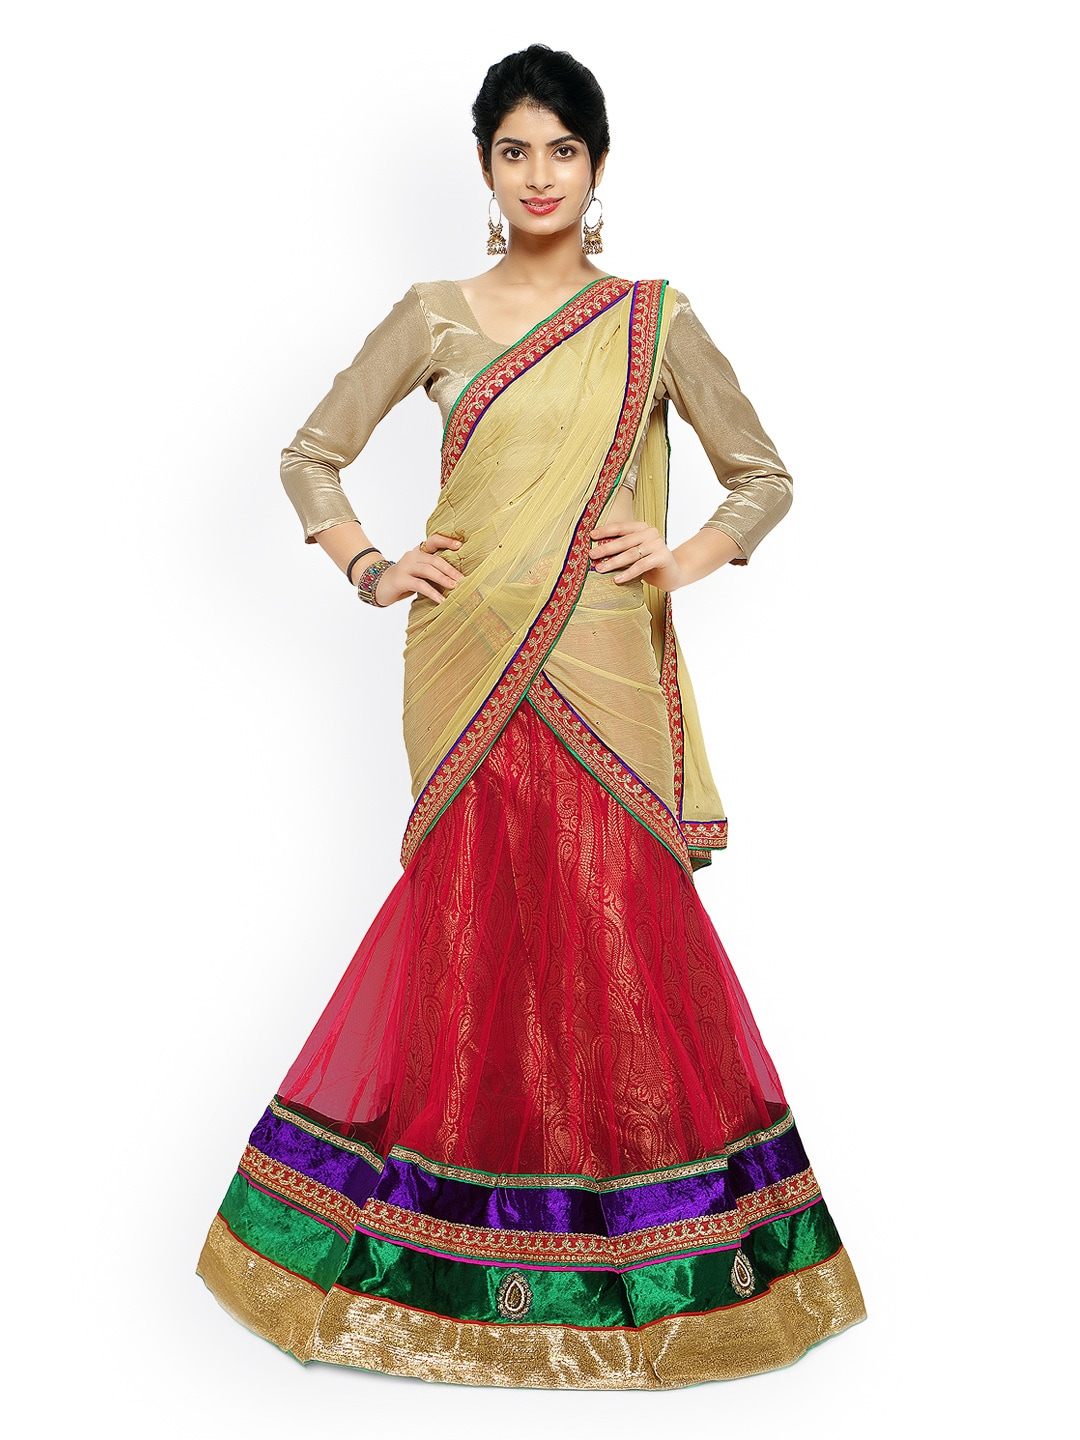 Touch Trends Maroon Net Semi-Stitched Lehenga Choli Material with Dupatta image